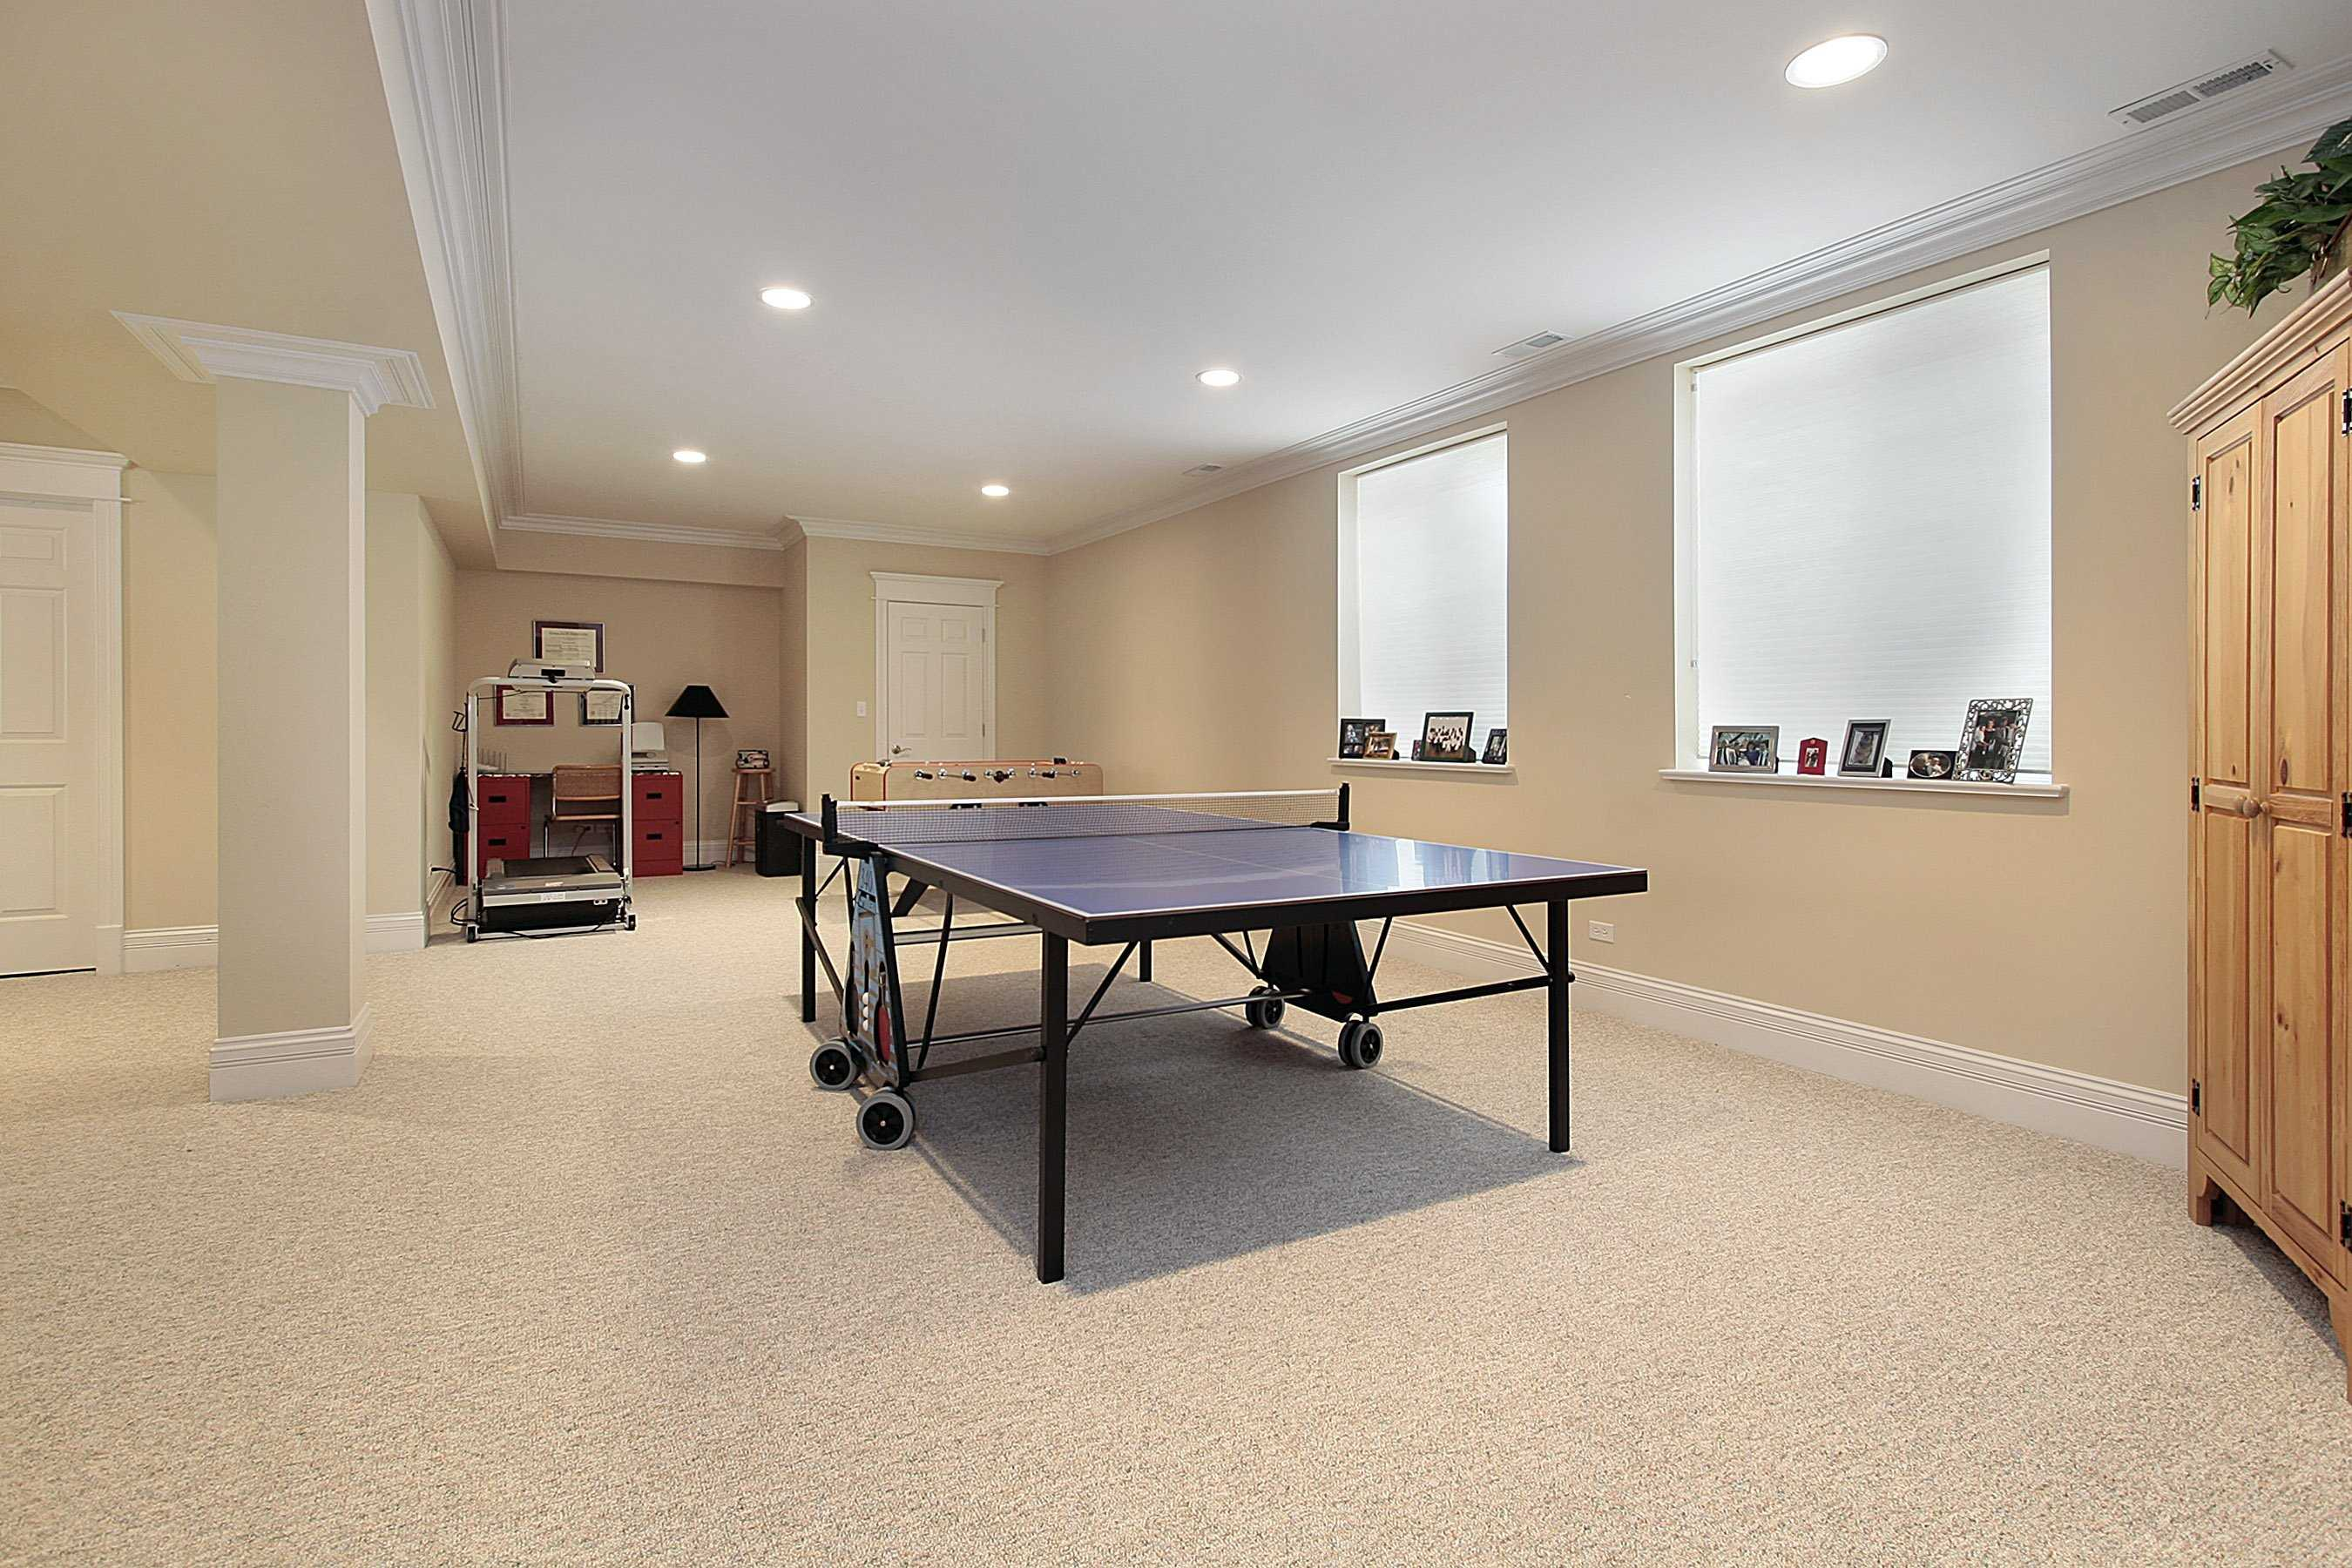 Basement Room Ideas Fascinating 30 Basement Remodeling Ideas & Inspiration Review